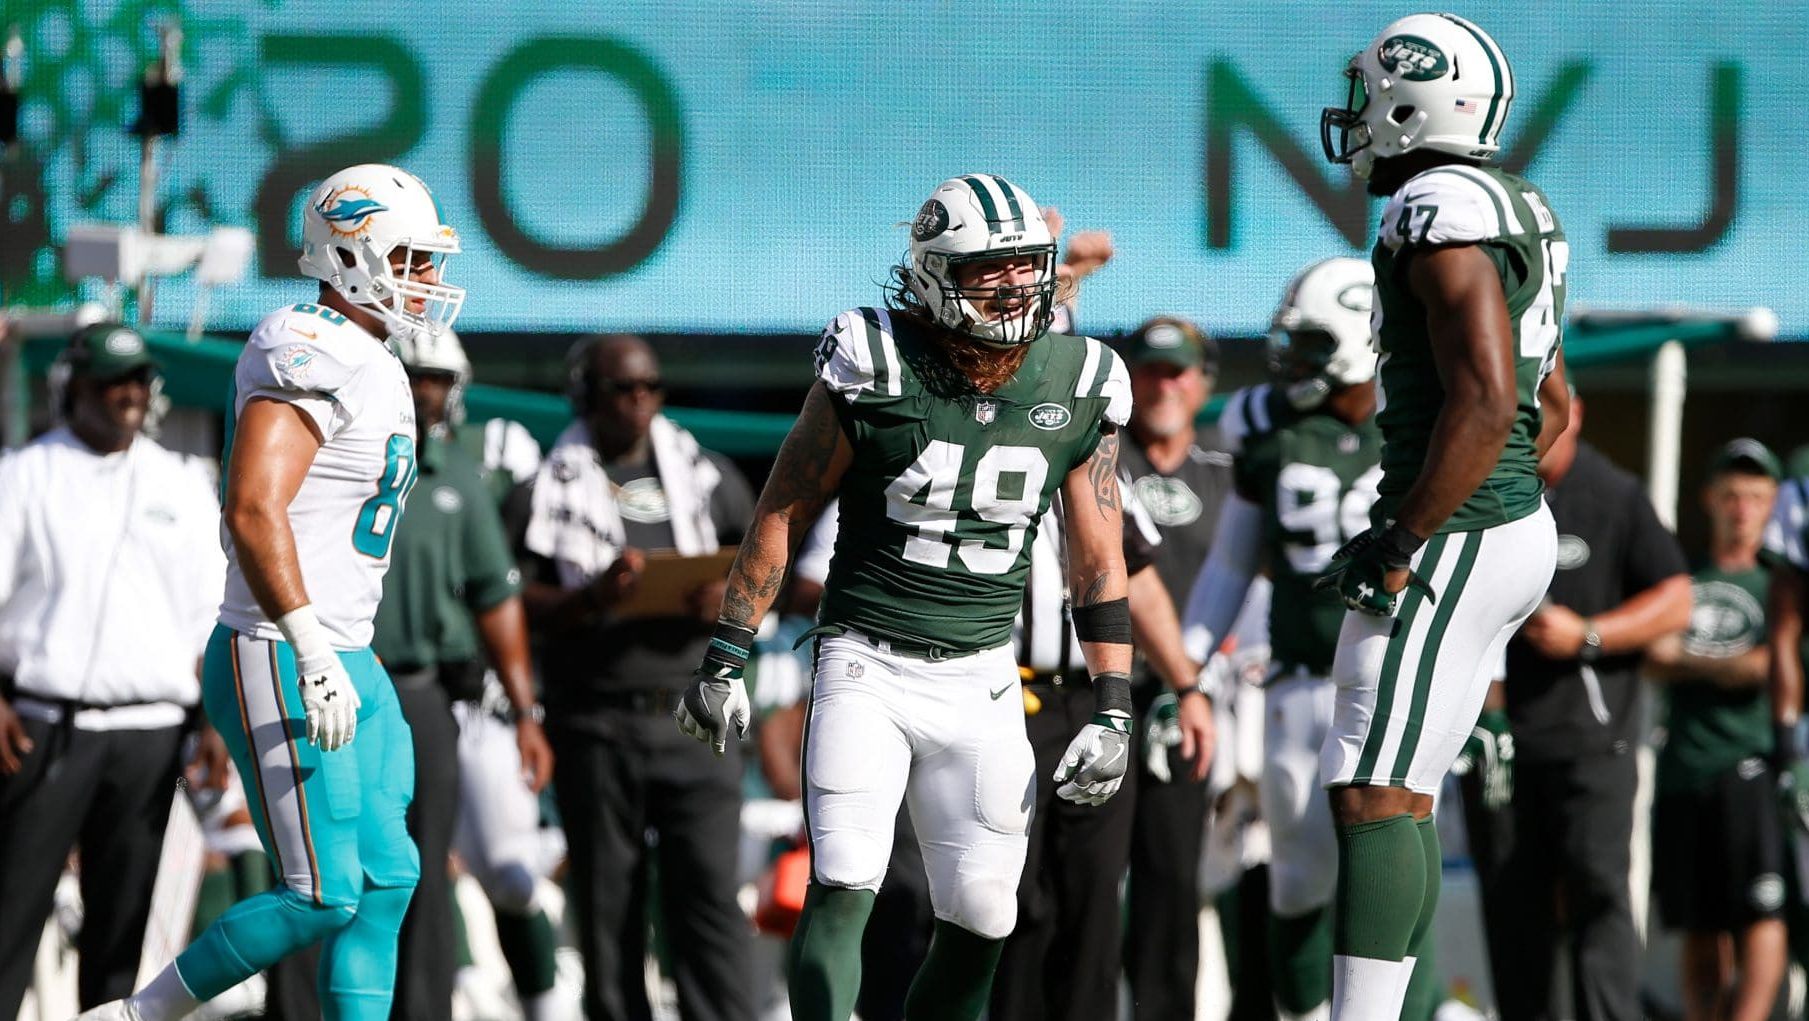 Jets LB Donahue charged with DWI after Lincoln Tunnel…